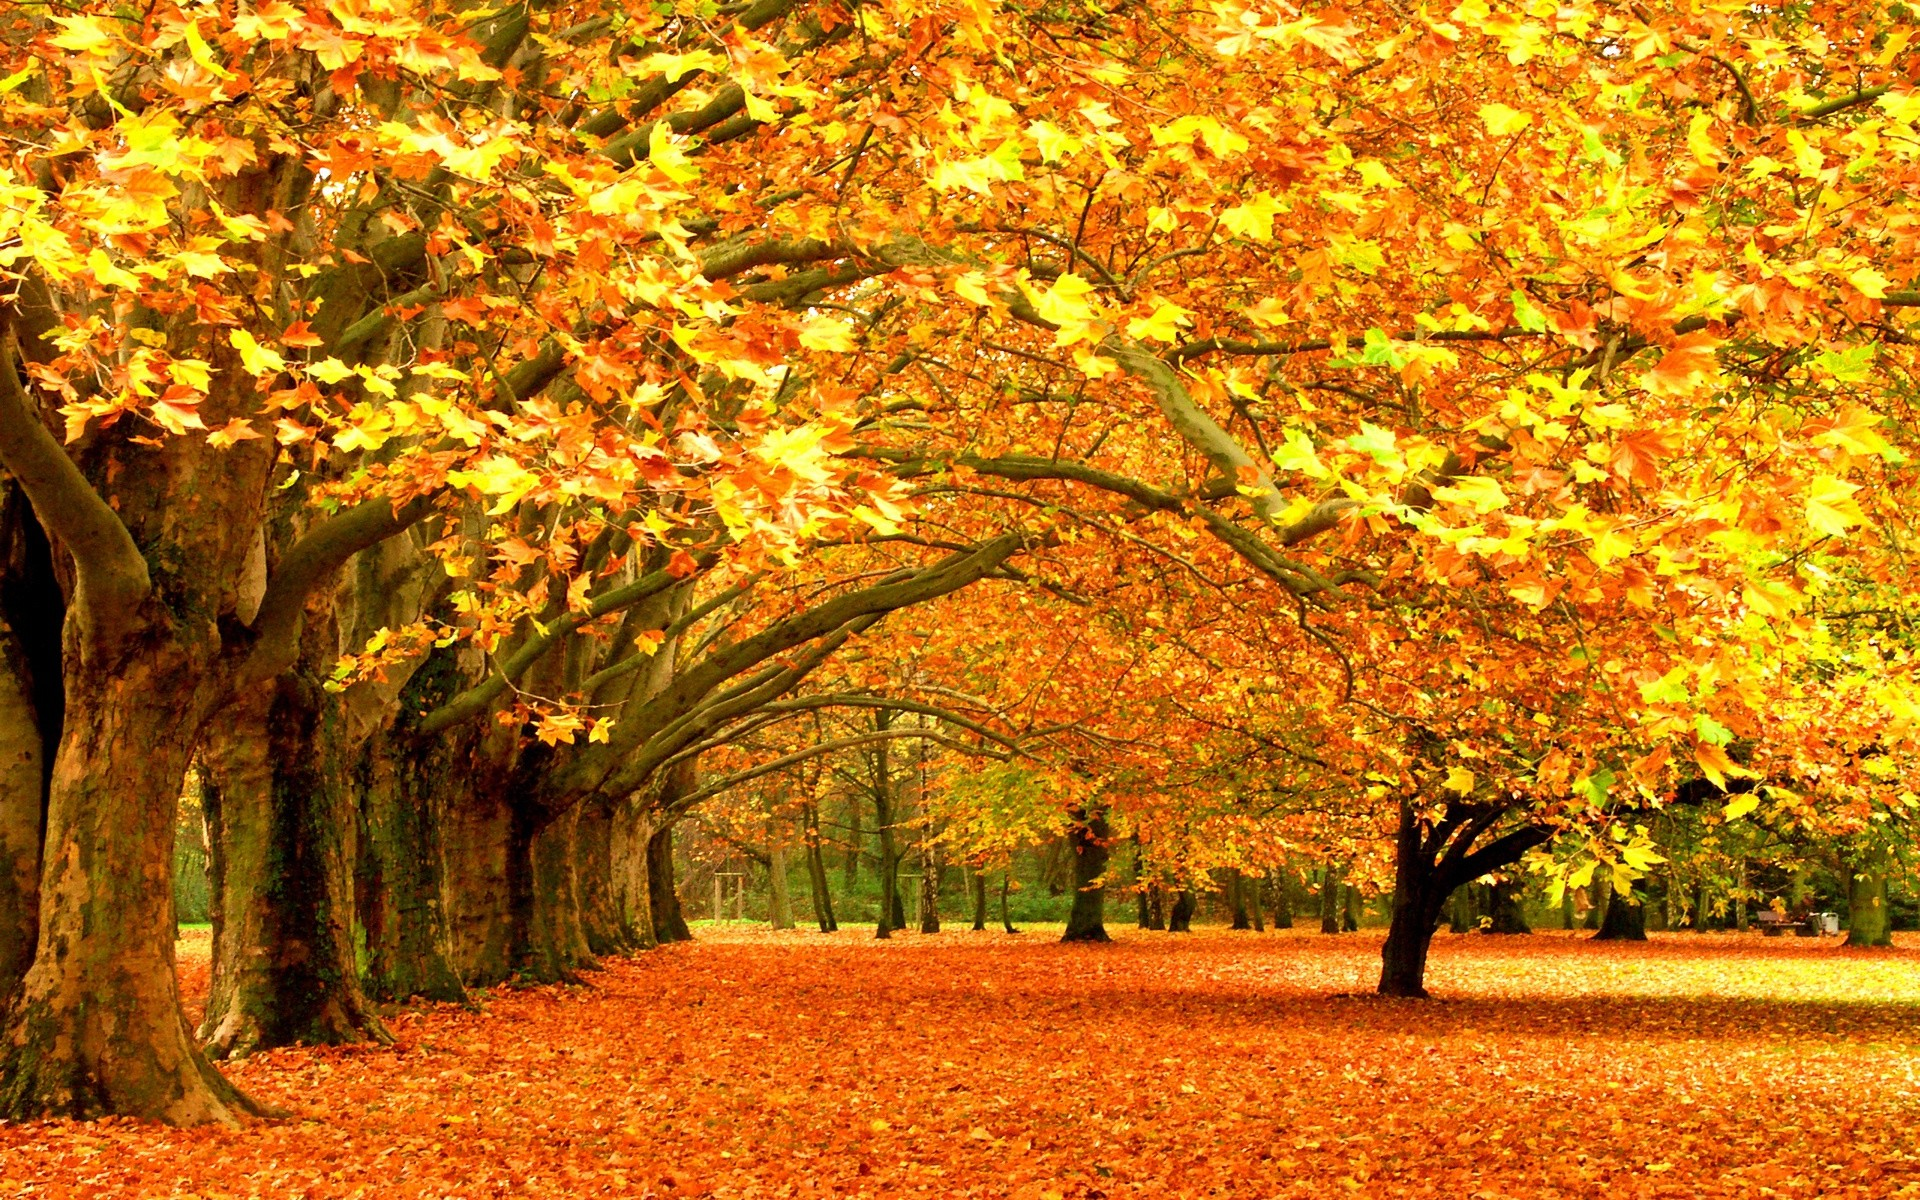 Free Desktop Wallpaper Autumn Leaves: Fall Desktop Wallpaper ·① Download Free Awesome High